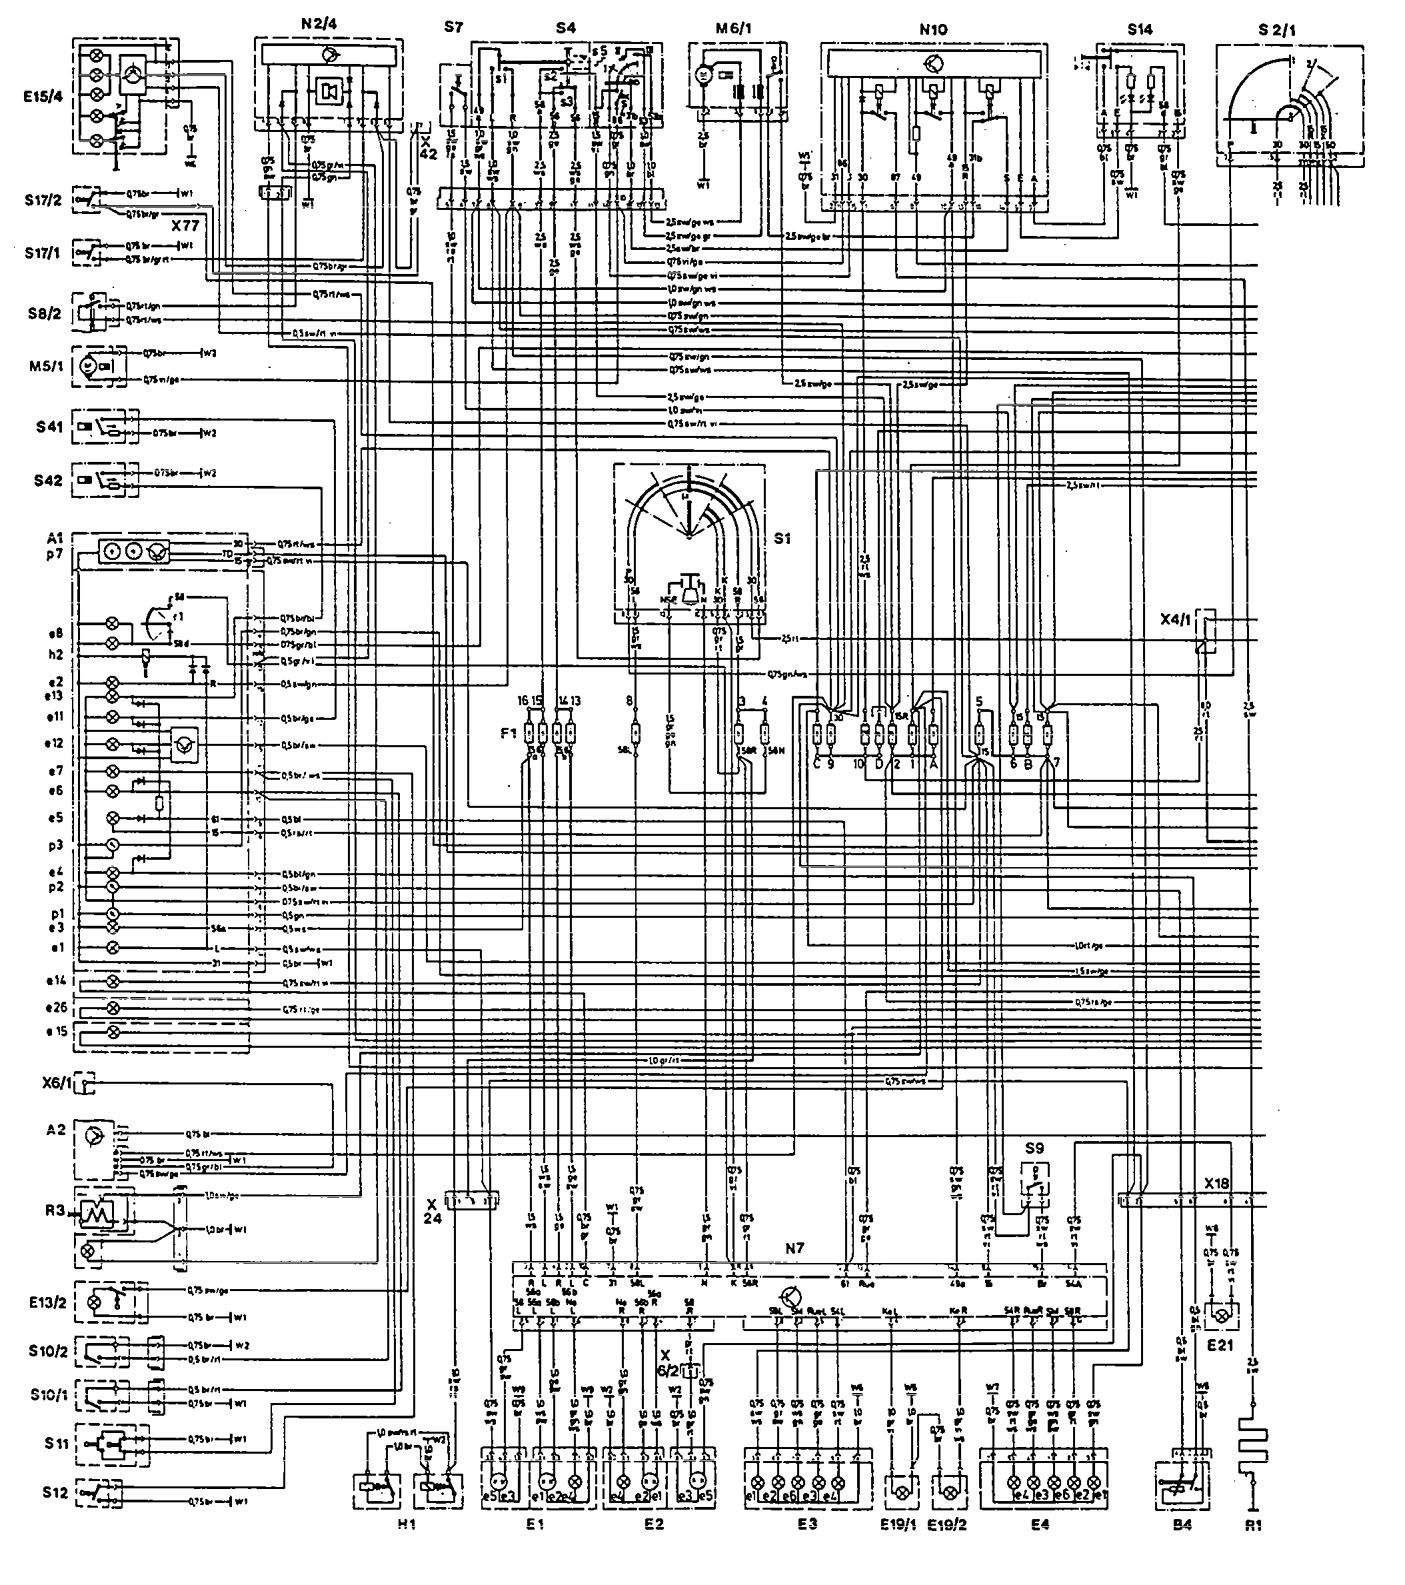 1966 Mercedes 230s Wiring Diagram - Trusted Wiring Diagram